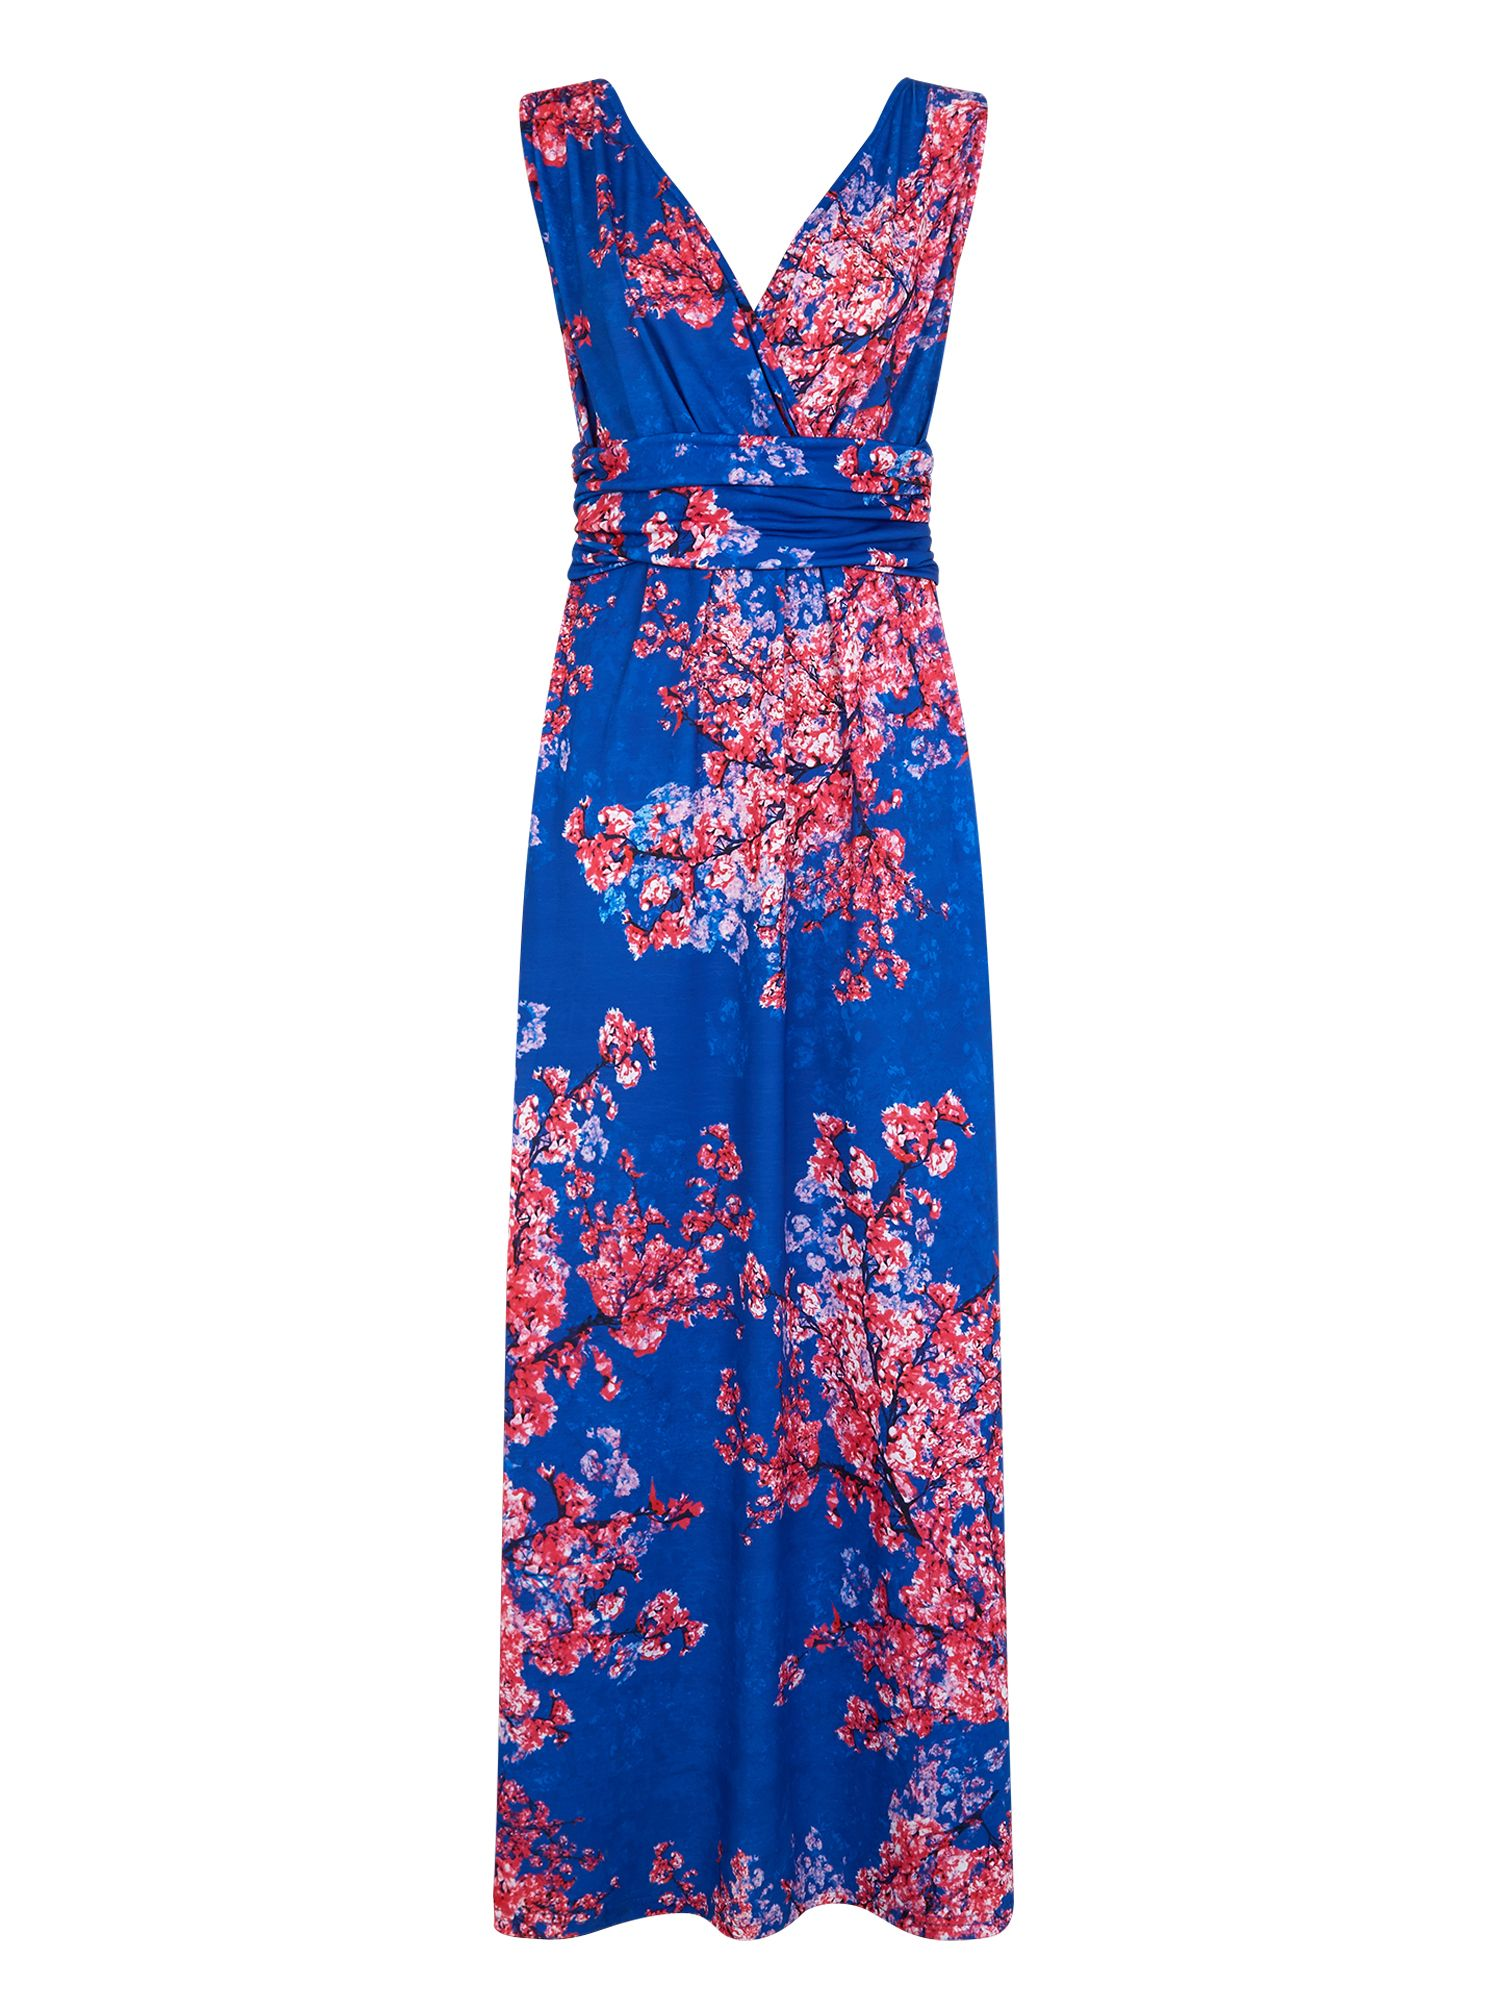 HotSquash V Neck Maxi Dress in CoolFresh, Multi-Coloured